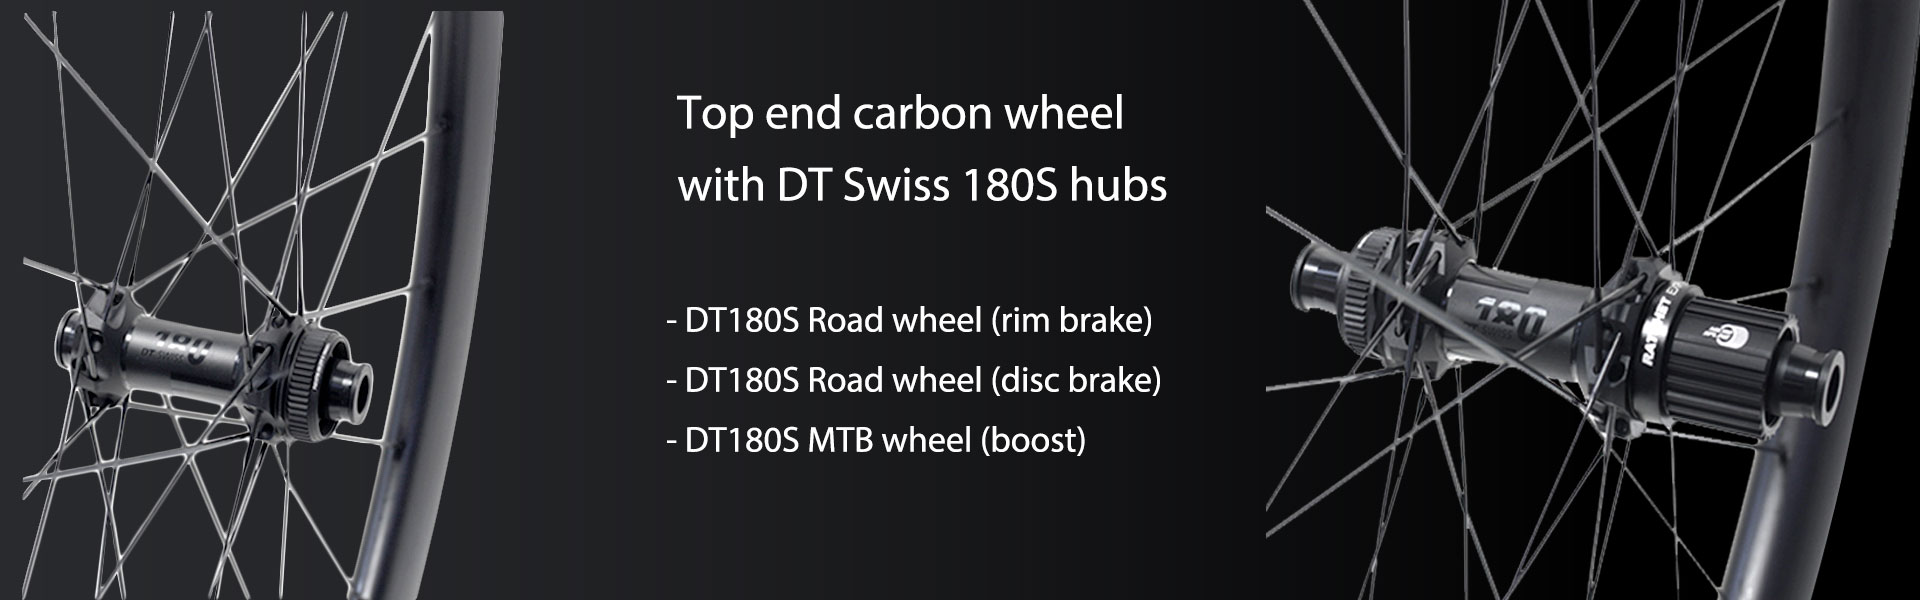 DT 180S high end carbon road wheelset